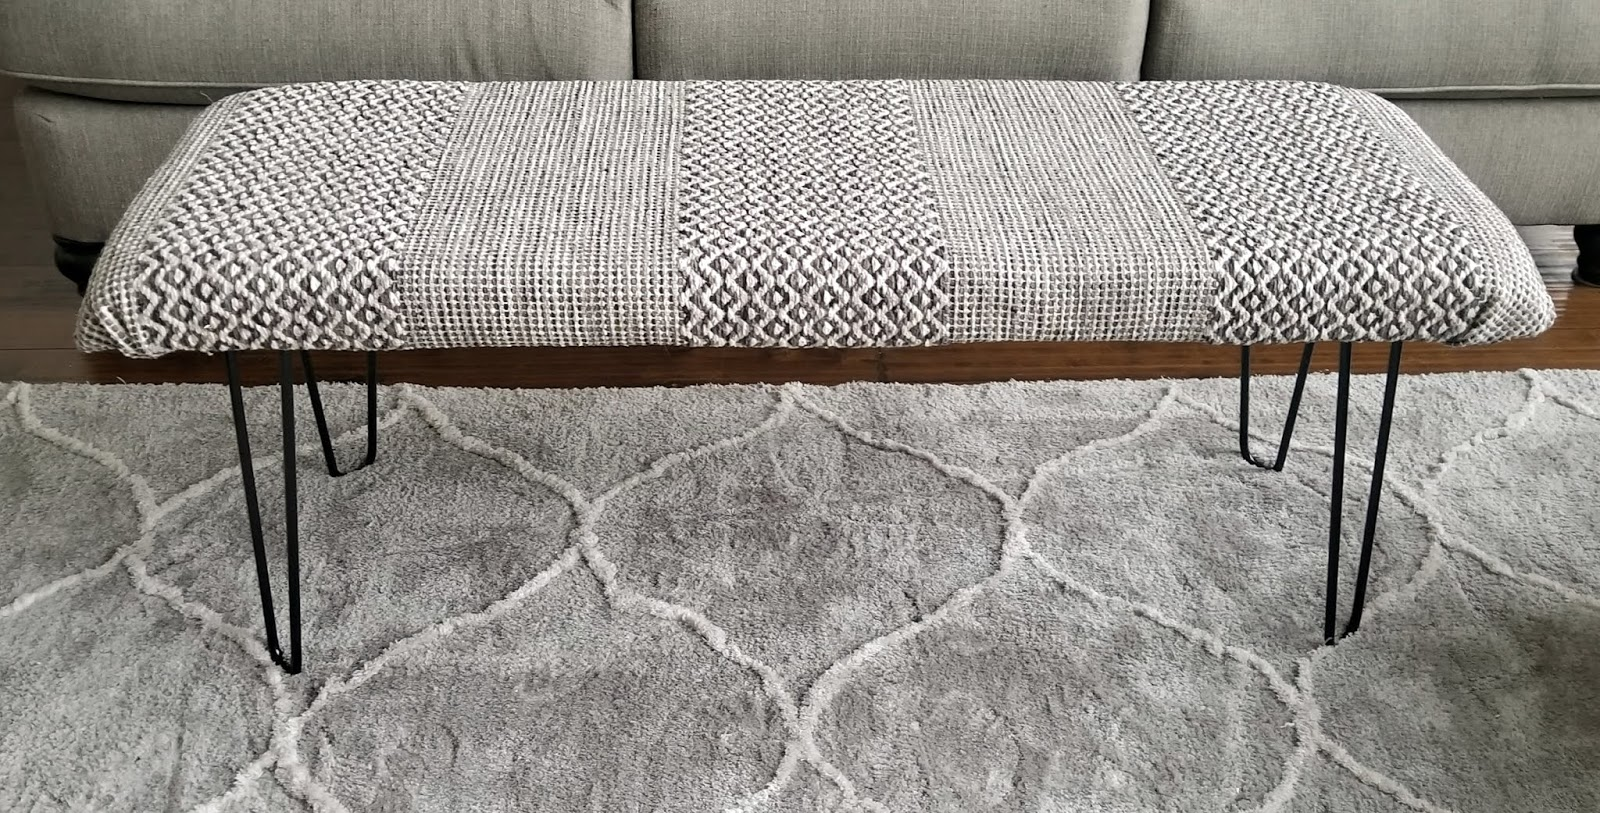 How To Make A Diy Bench Ottoman Out Of A Rug And Hairpin Legs 320